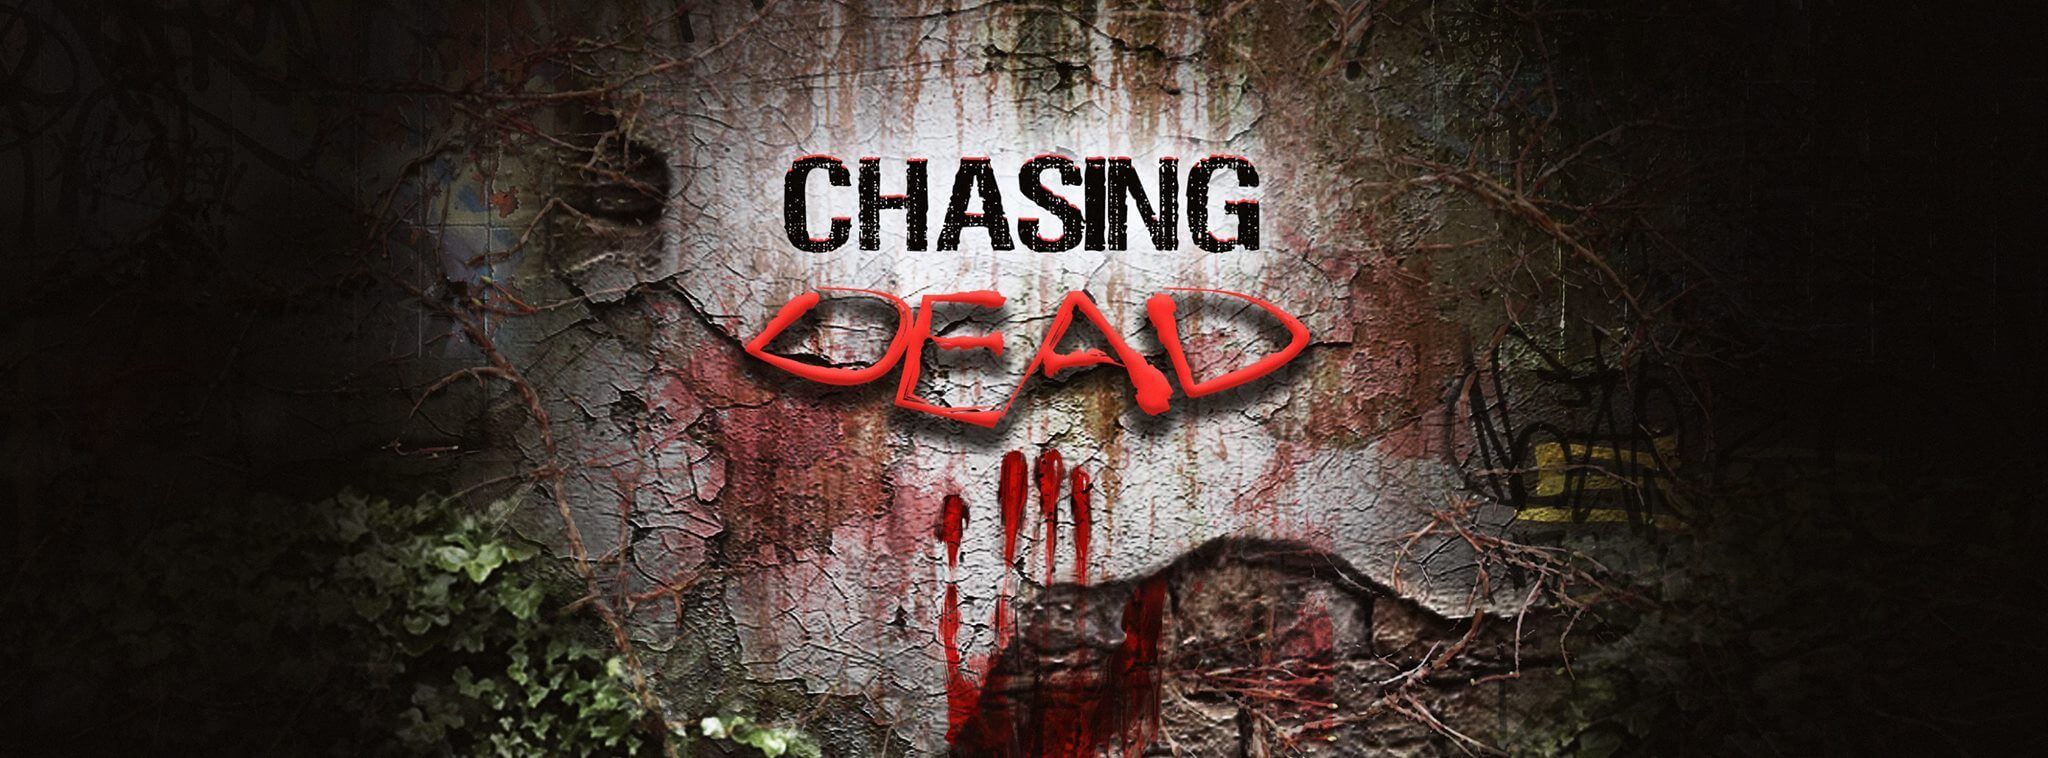 Chasing Dead 1 - Chasing Dead (Video Game)